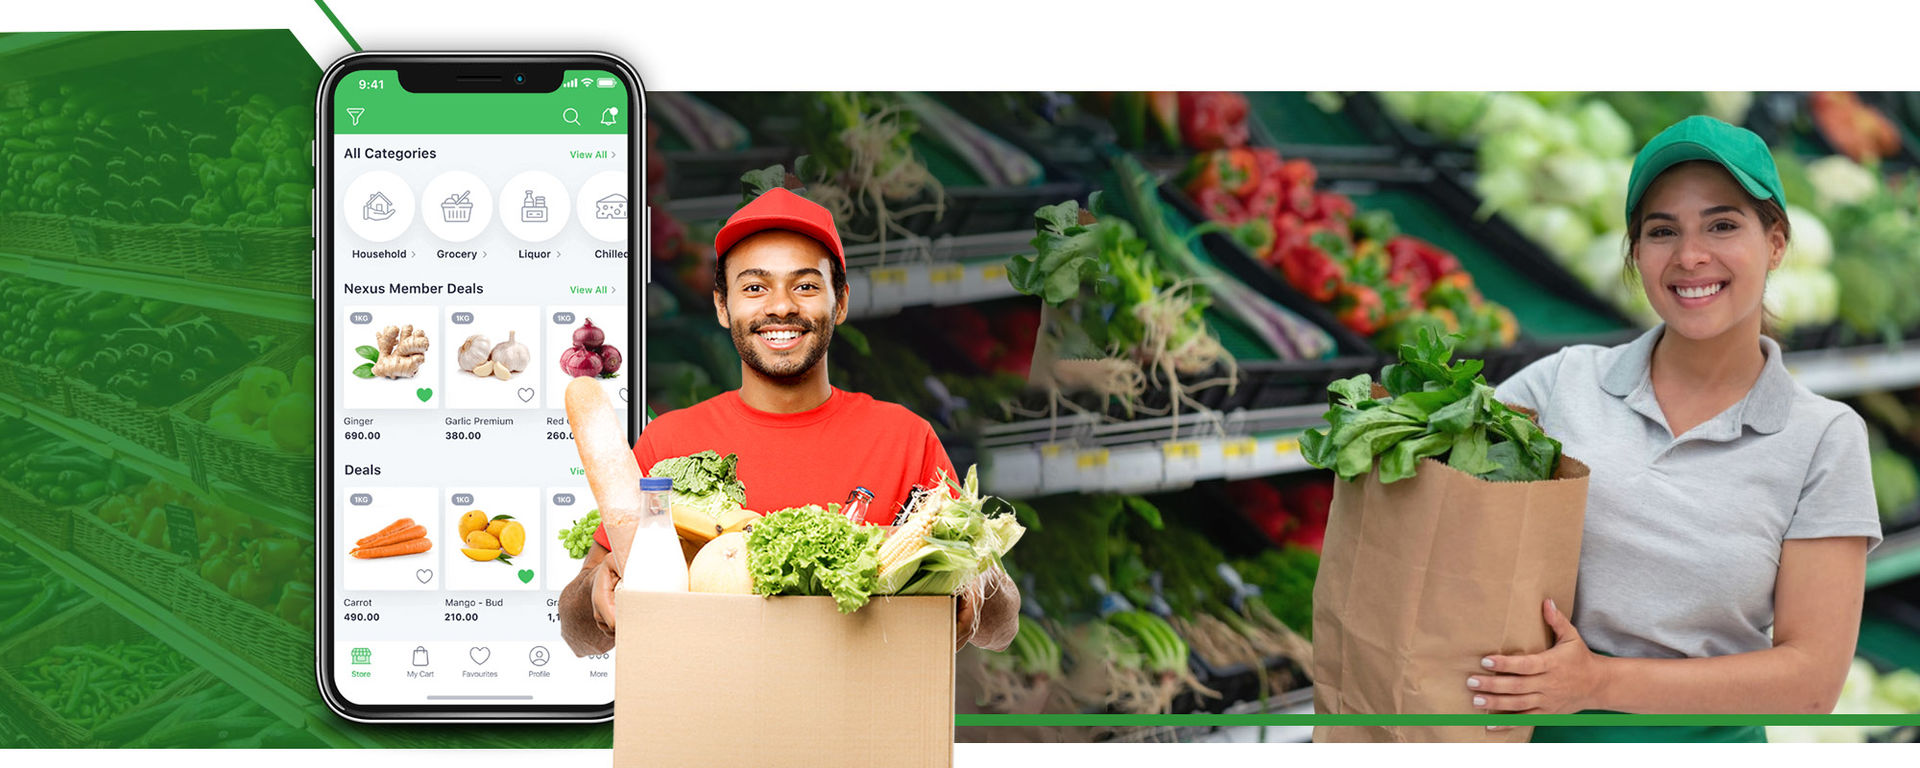 Grocery delivery apps are helping people in this quarantine season: Here's how you can develop one